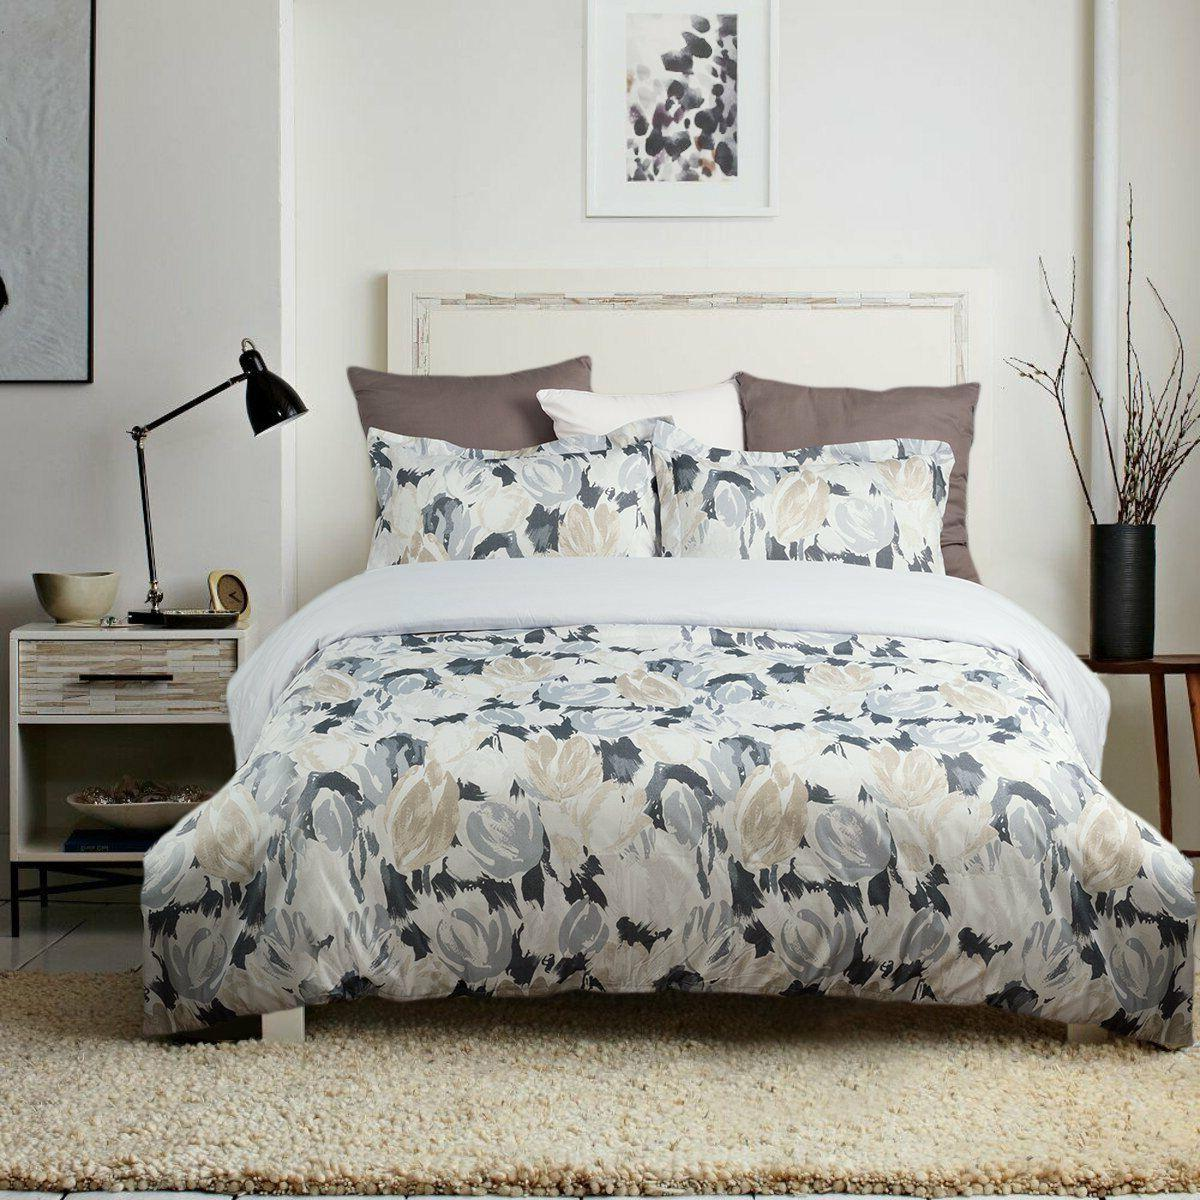 Bedsure Soft 3-Piece Tulip Flower Duvet Cover Set for Comfor